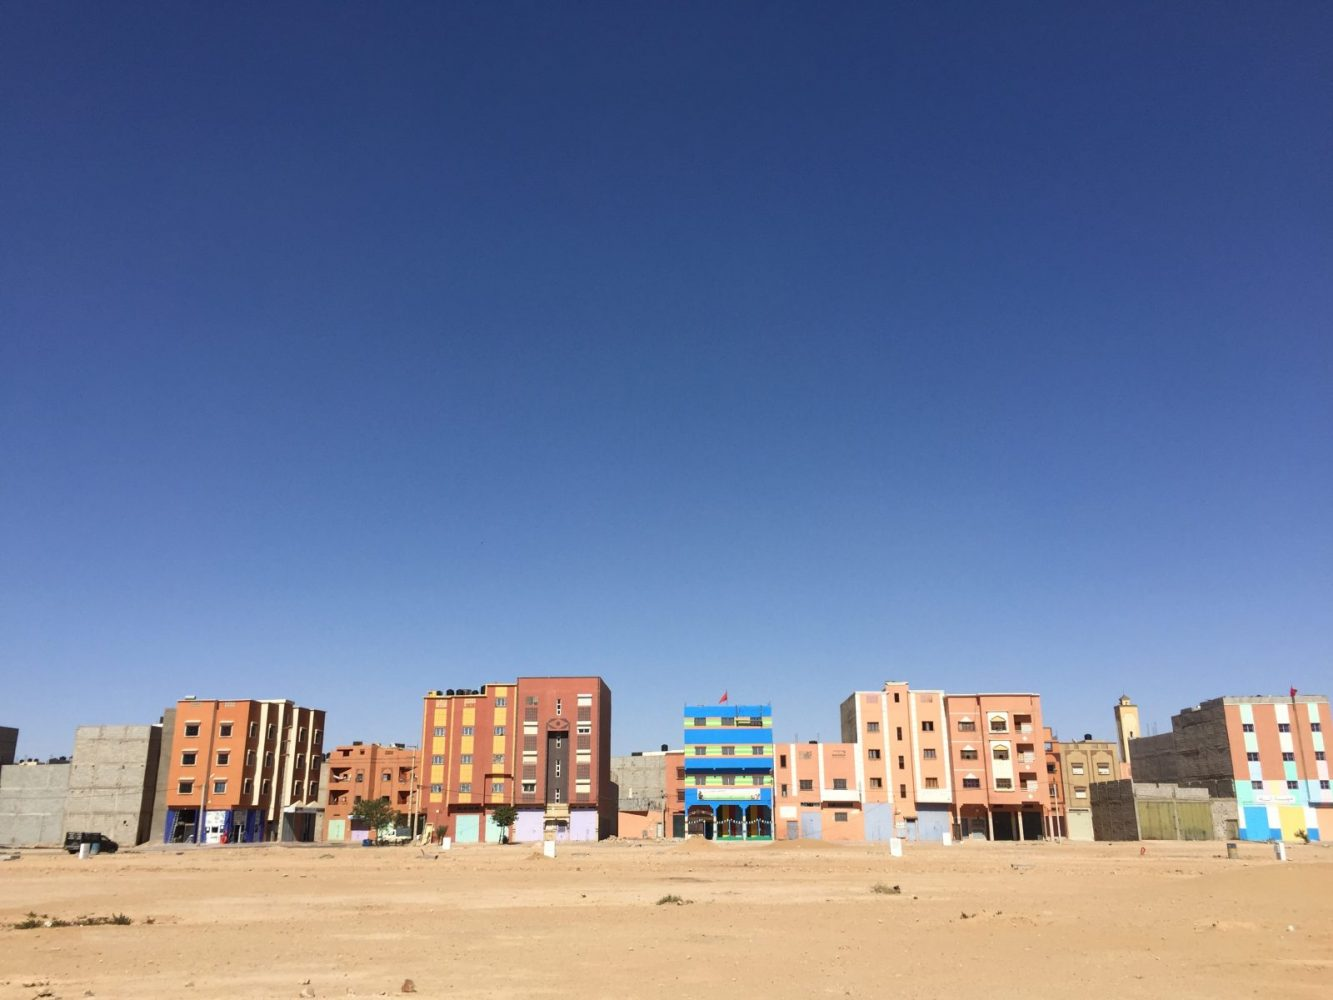 Tunis and Western Sahara – Two exciting North African destinations